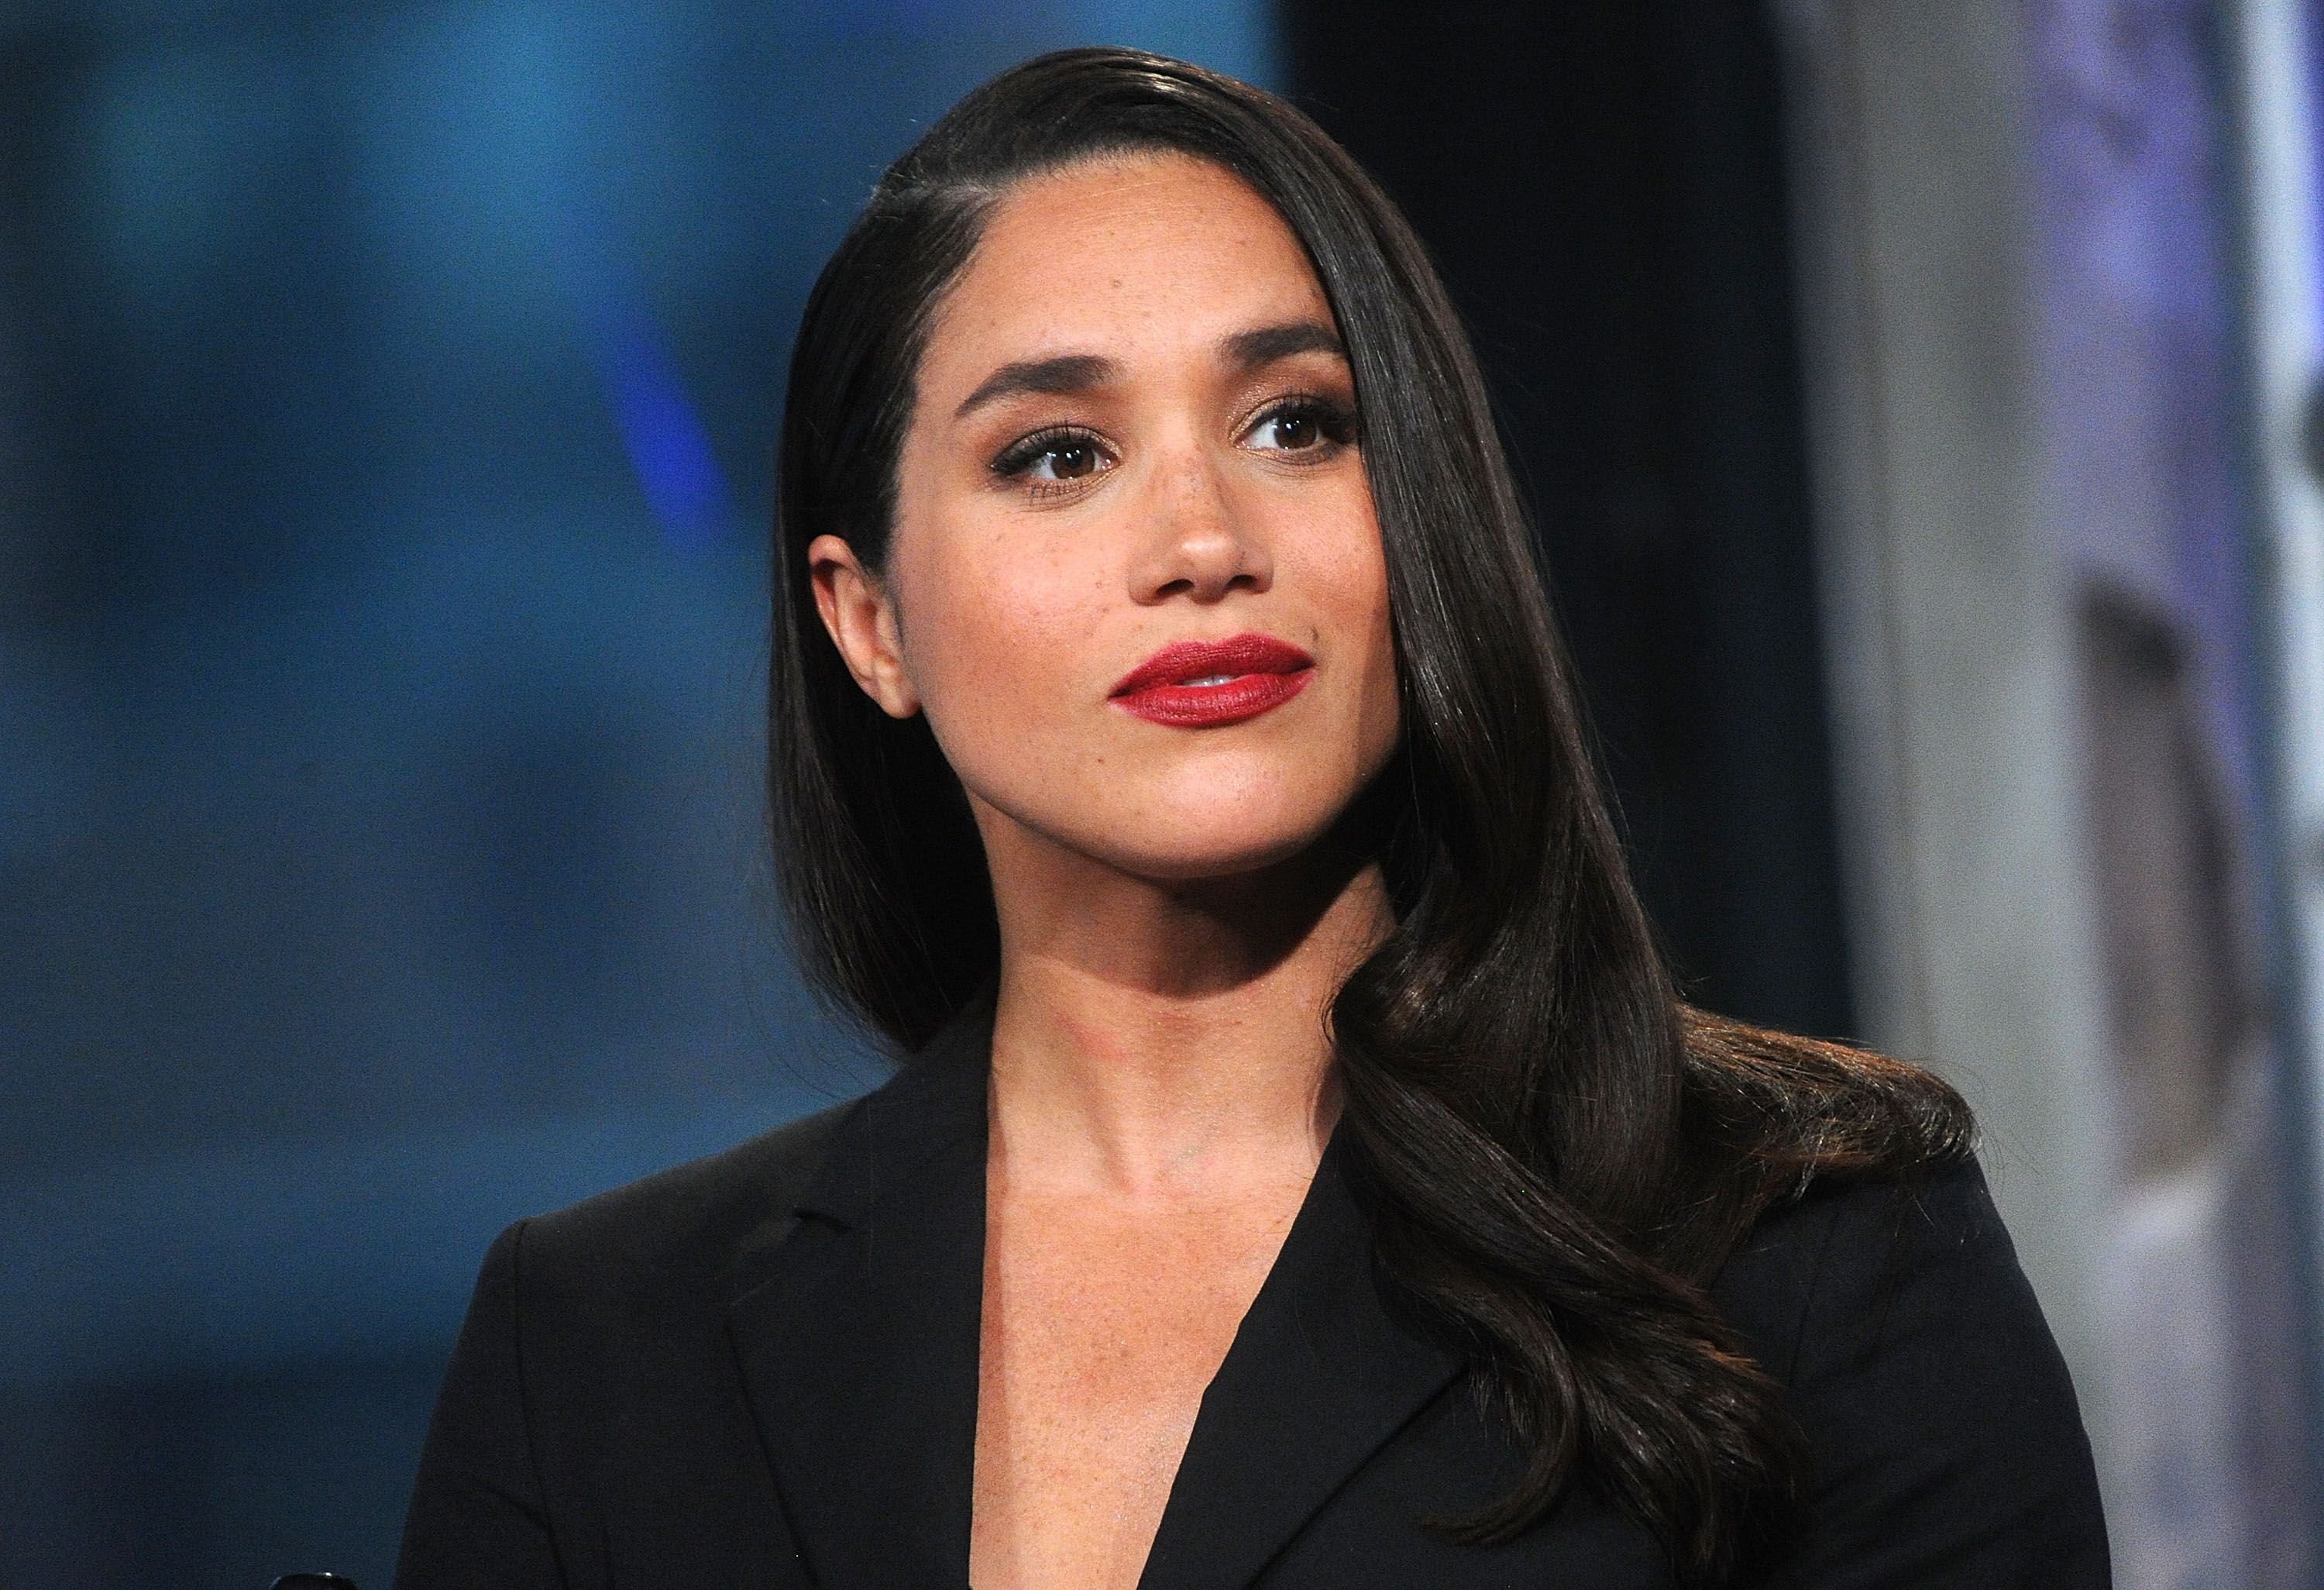 17 Inspirational Quotes By Suits Actress Meghan Markle